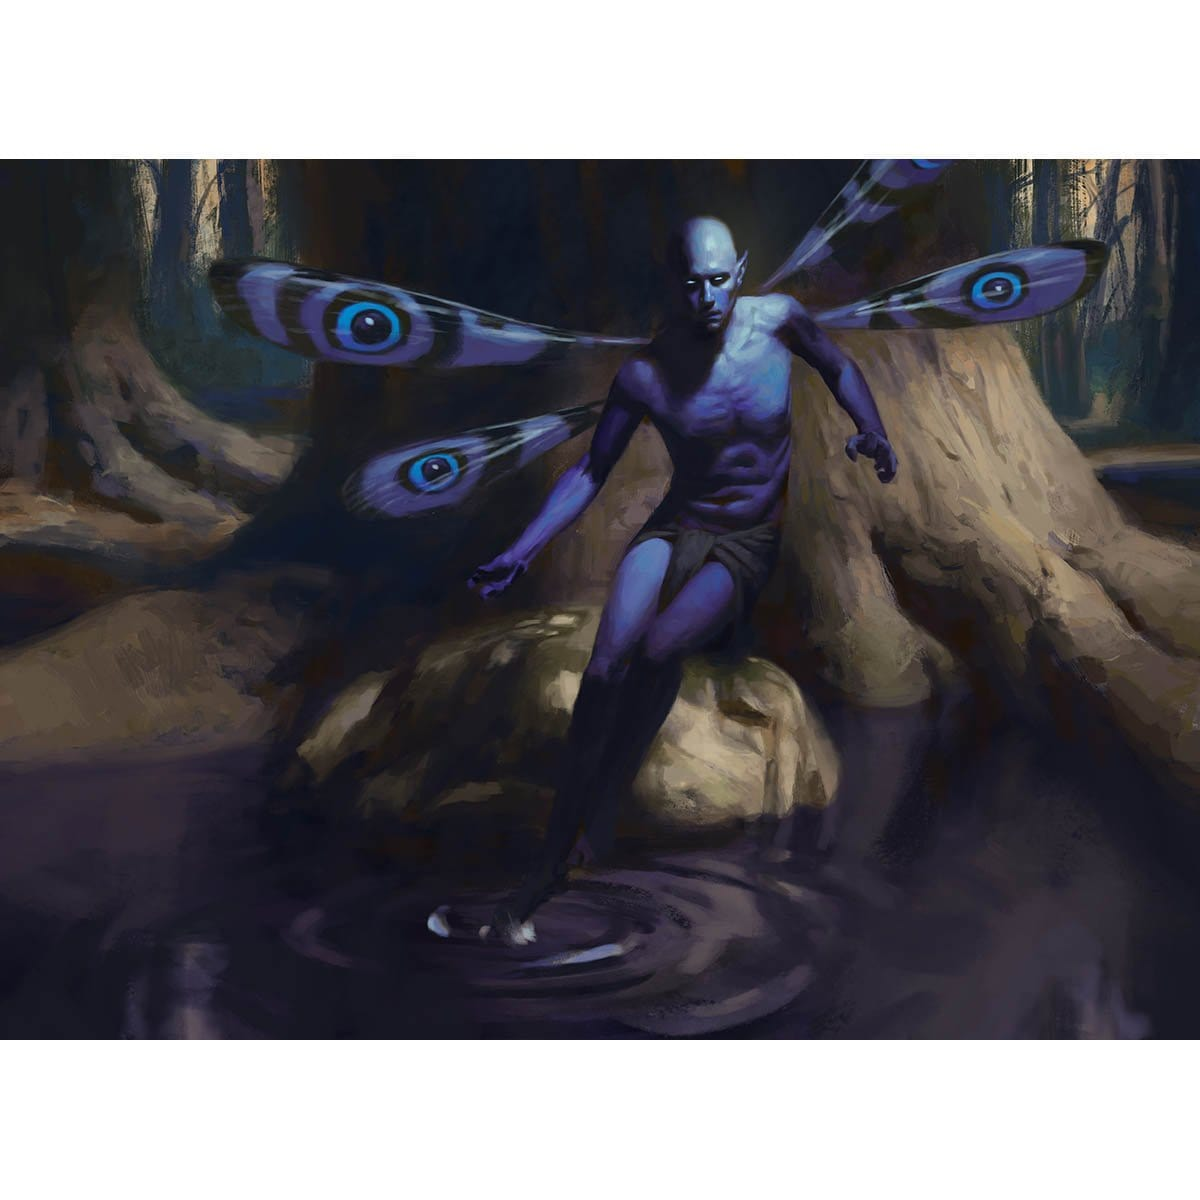 Faerie Seer Print - Print - Original Magic Art - Accessories for Magic the Gathering and other card games